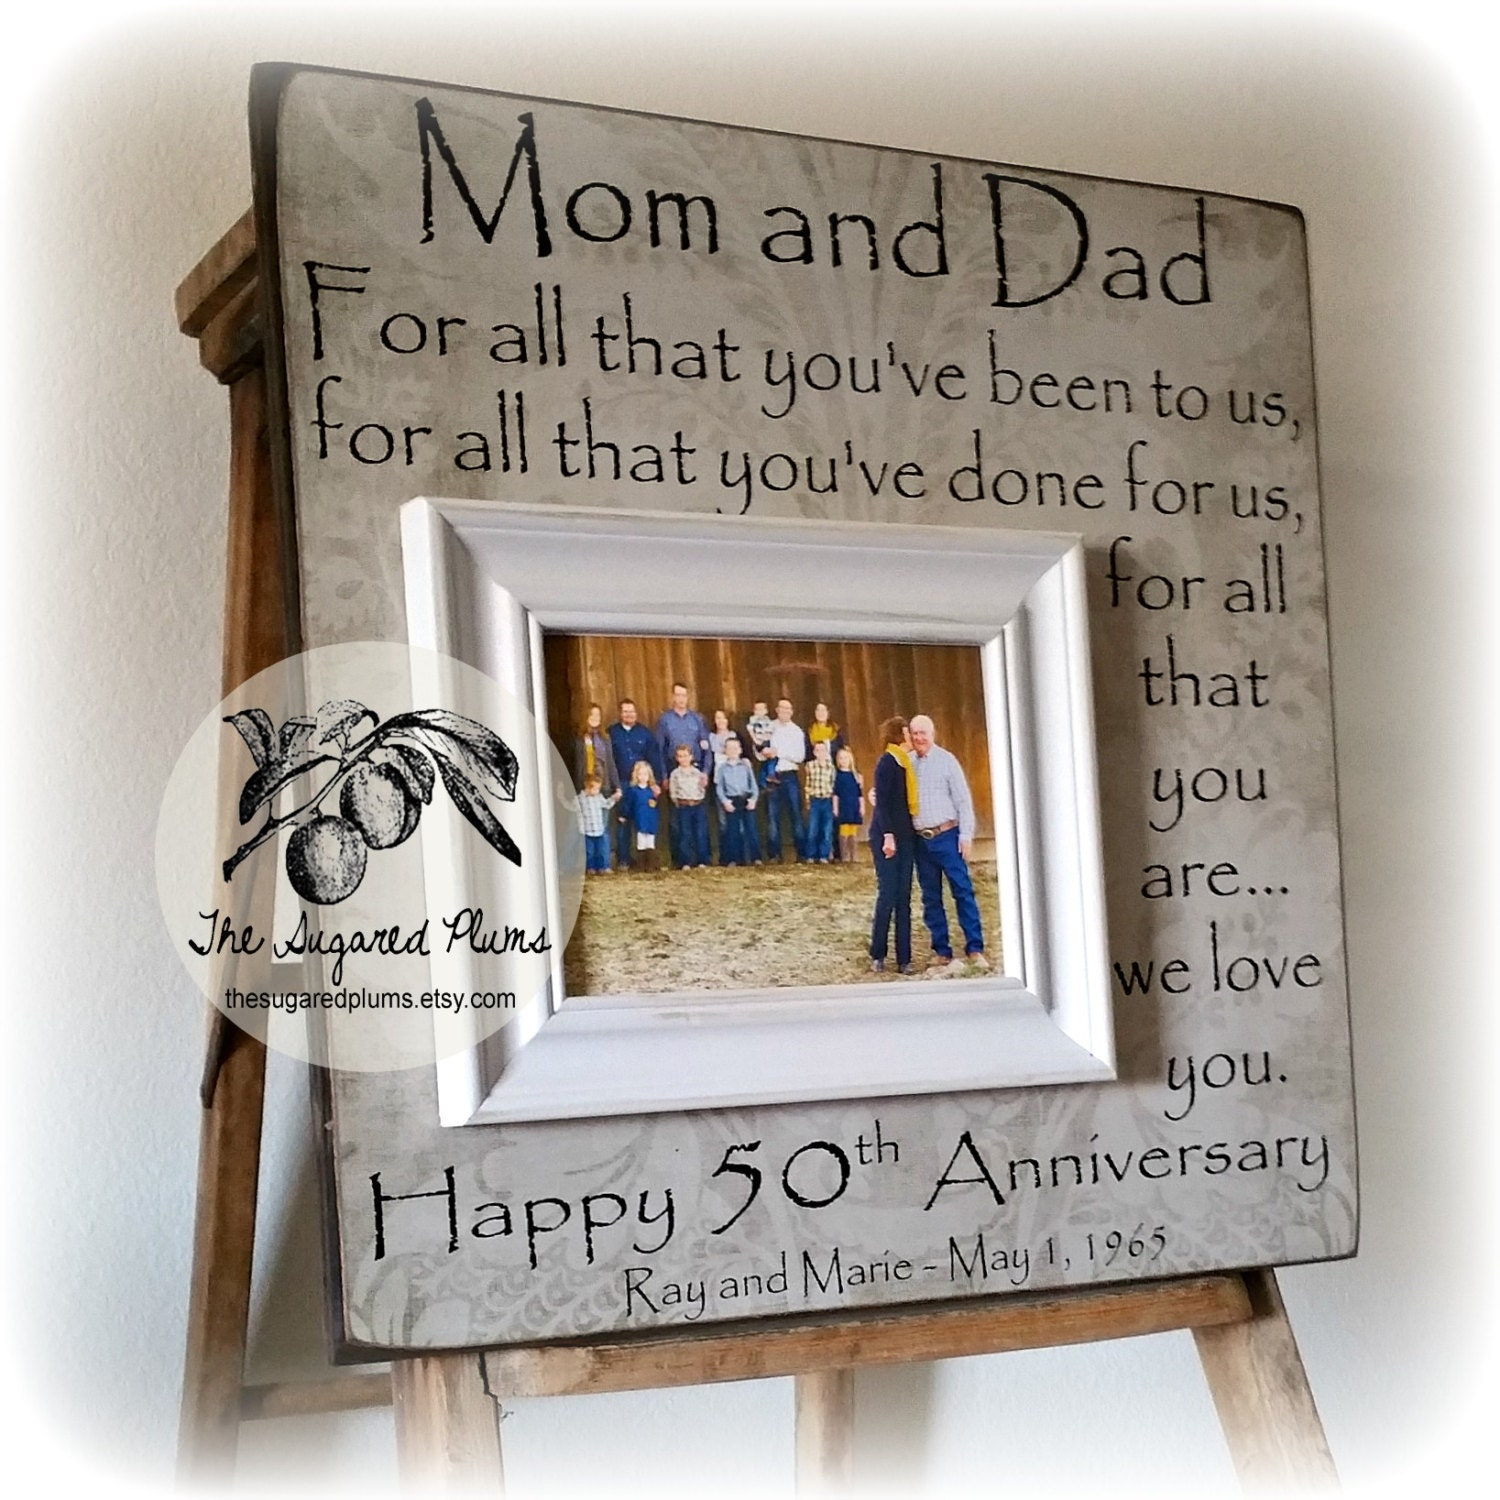 Wedding Anniversary Gift For Mom And Dad : 50th Anniversary Gifts Parents Anniversary Gift For All That